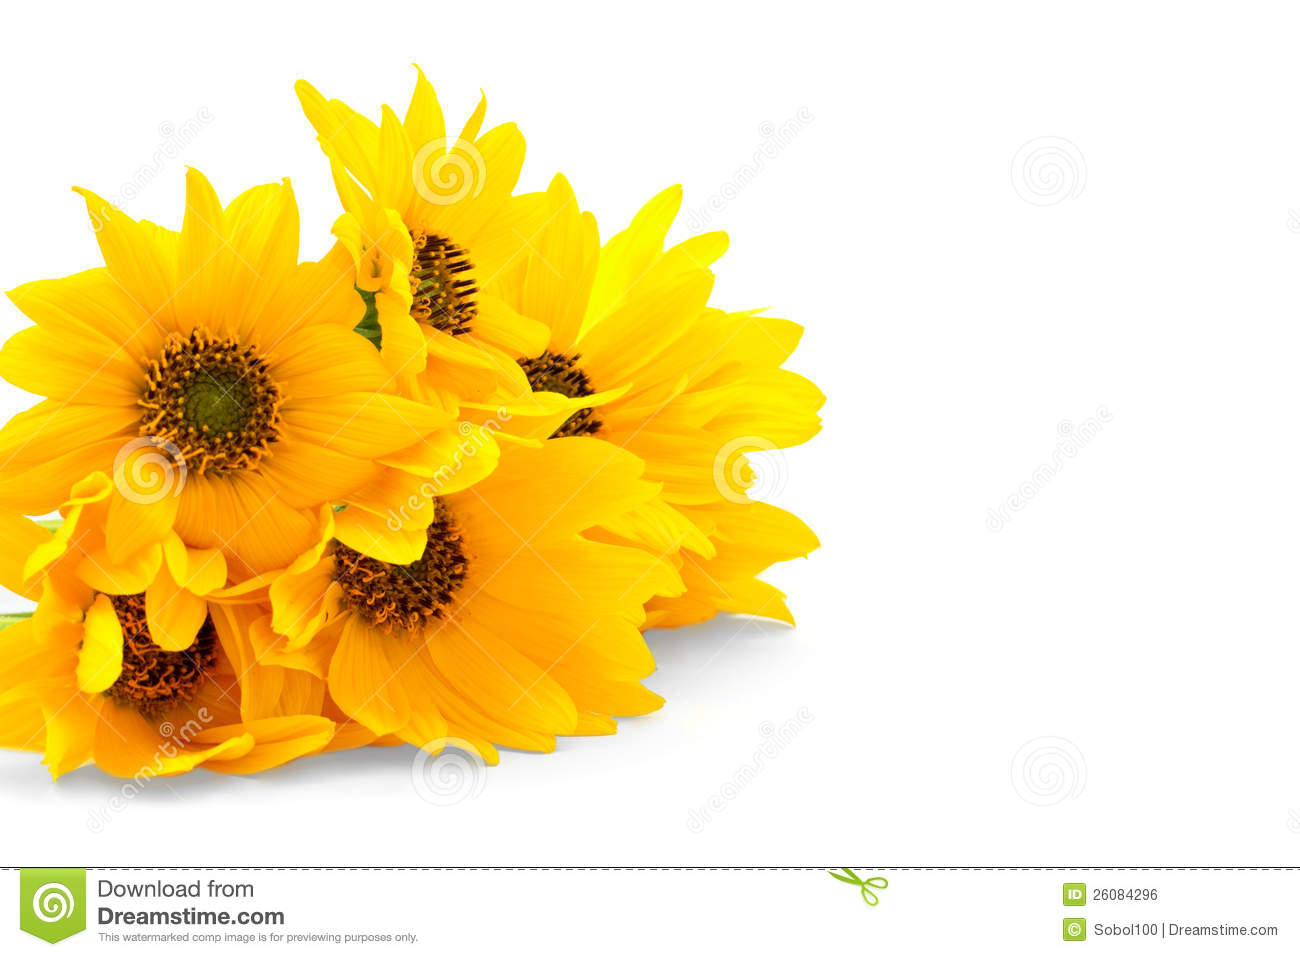 Free pictures of yellow flowers graphic library download Fresh Yellow Flowers On White Background Royalty Free Stock Image ... graphic library download